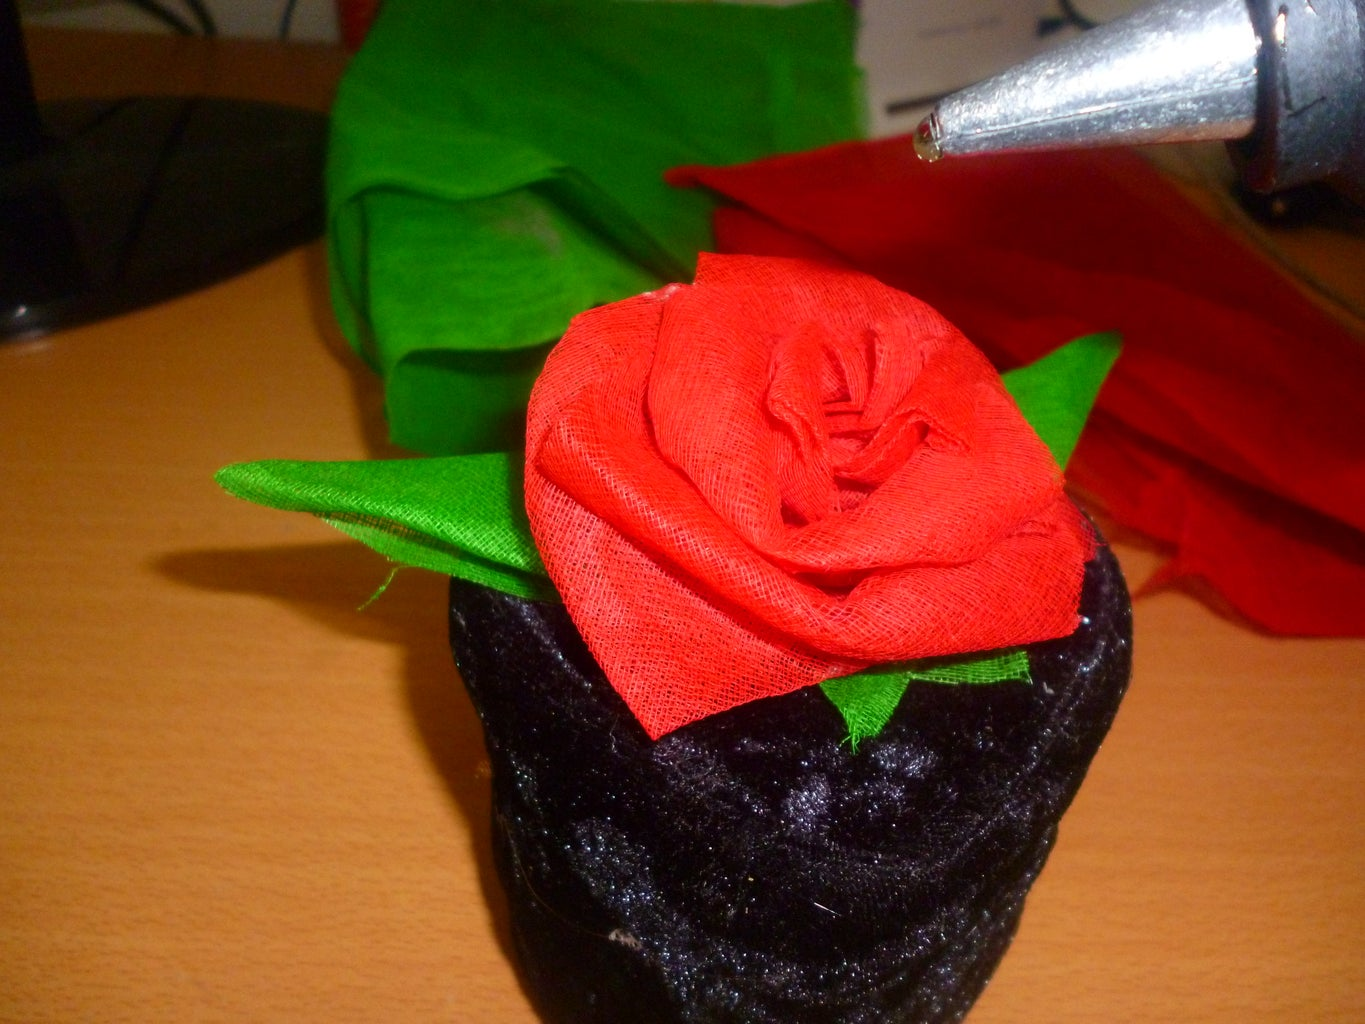 Mke Some Fabric Flowers and Leafs and Stick It With Hot Glue Gun